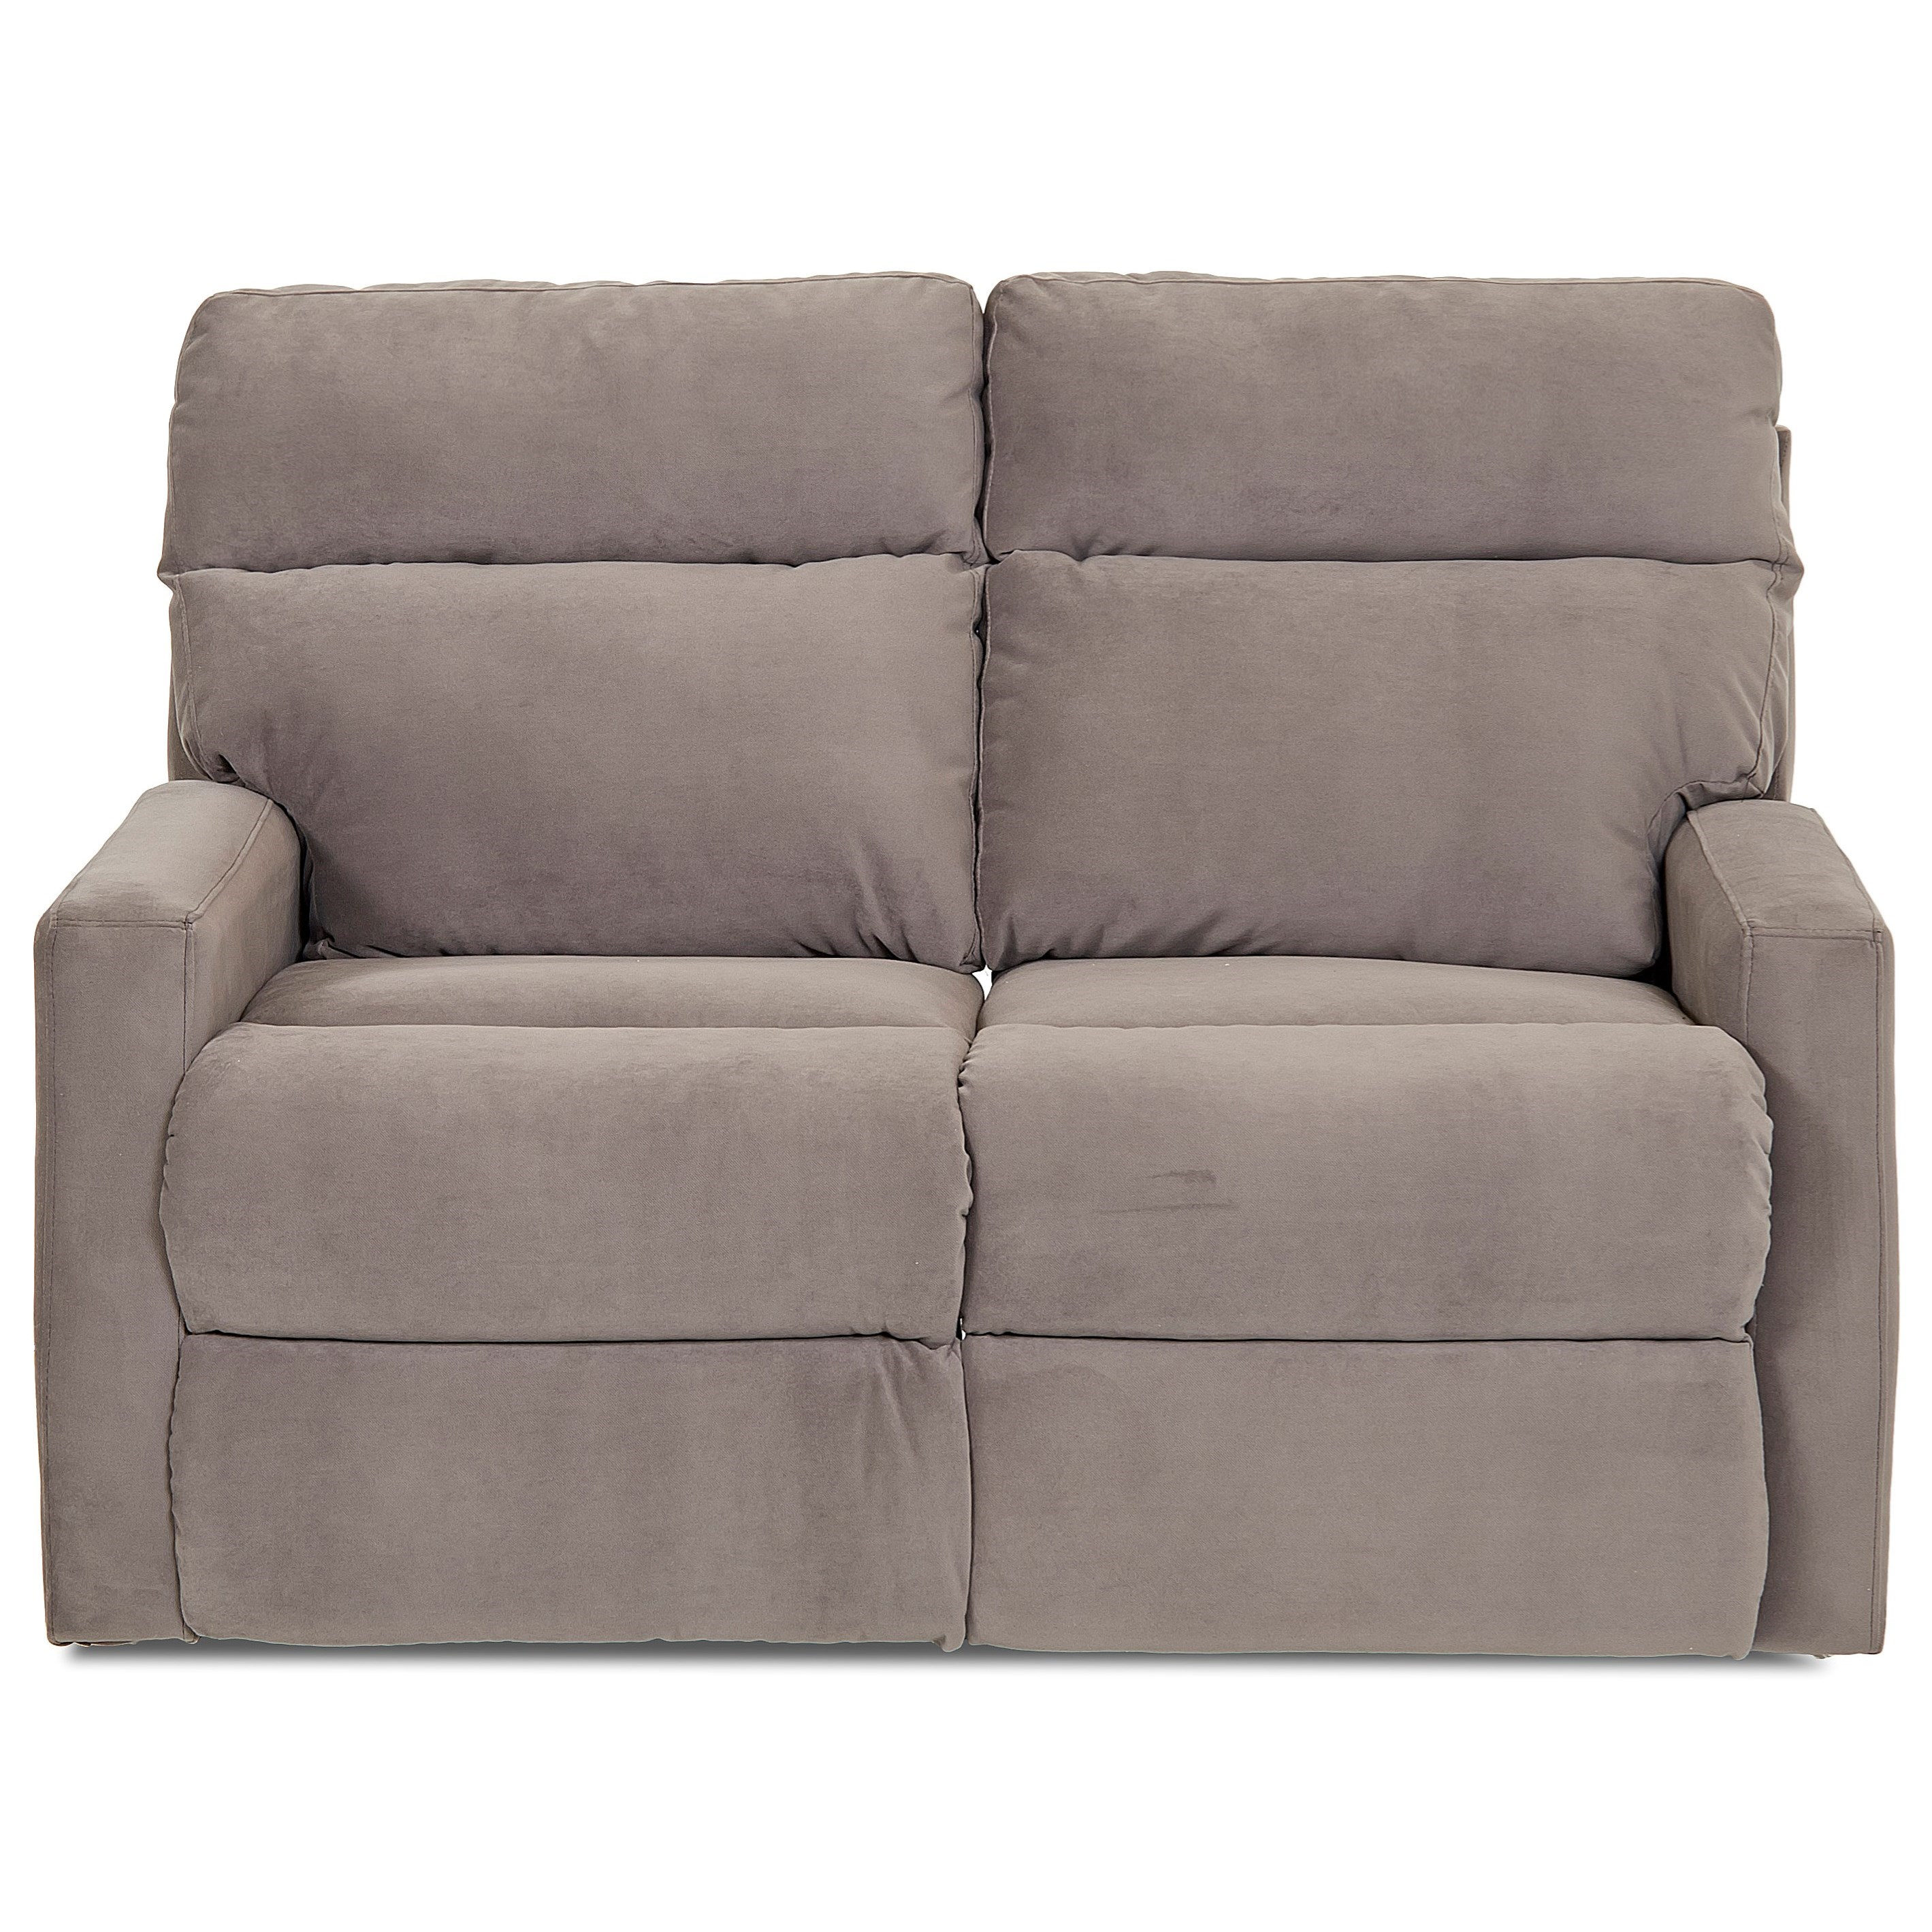 Klaussner Monticello Power Reclining Loveseat - Item Number: 41503 PWRLS-OAKL GRAP